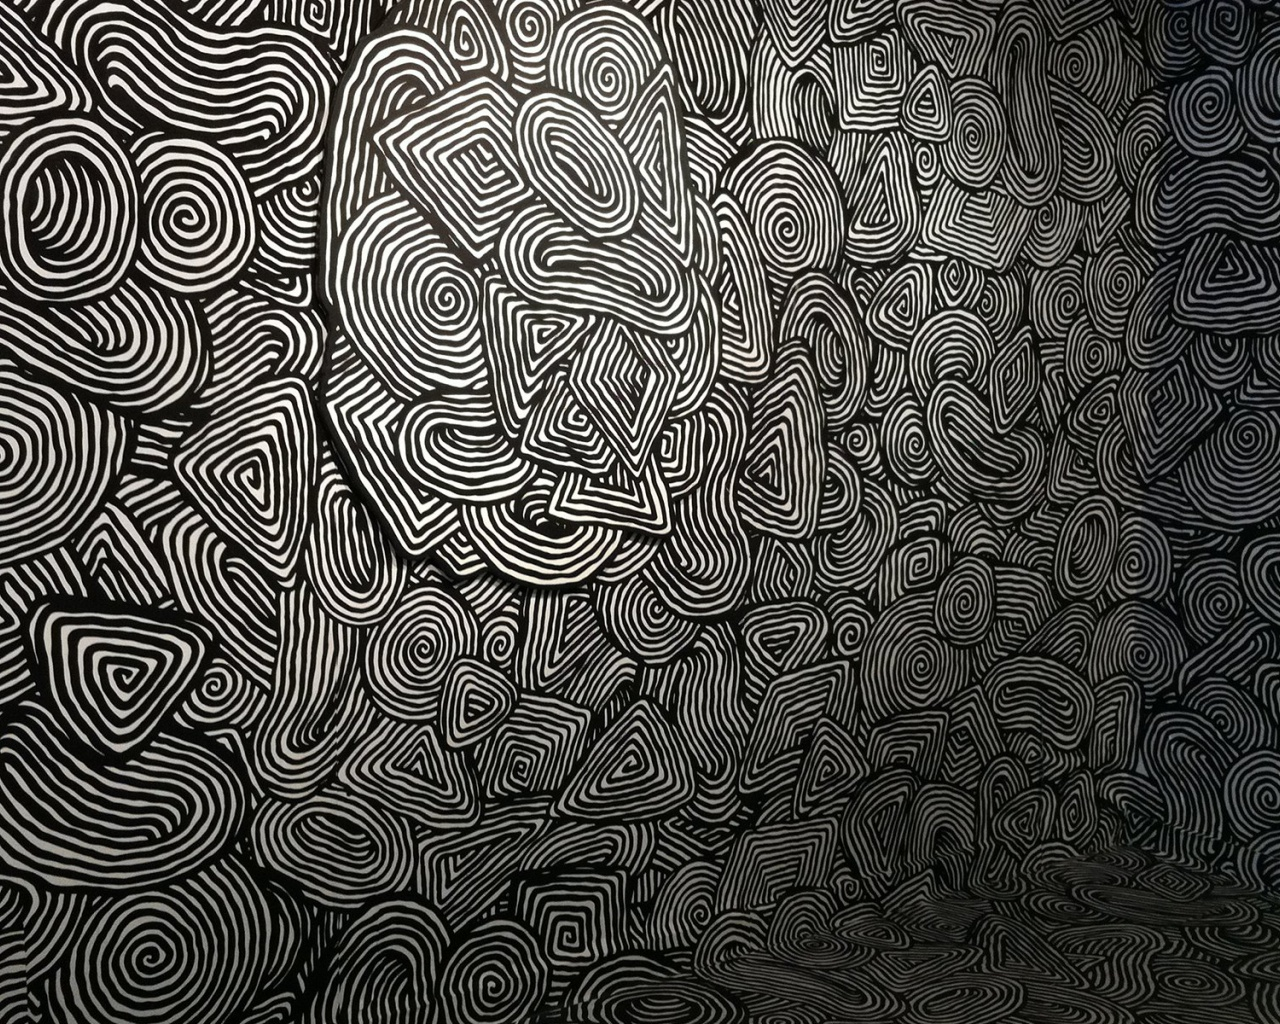 Psychedelic Wallpaper For Home